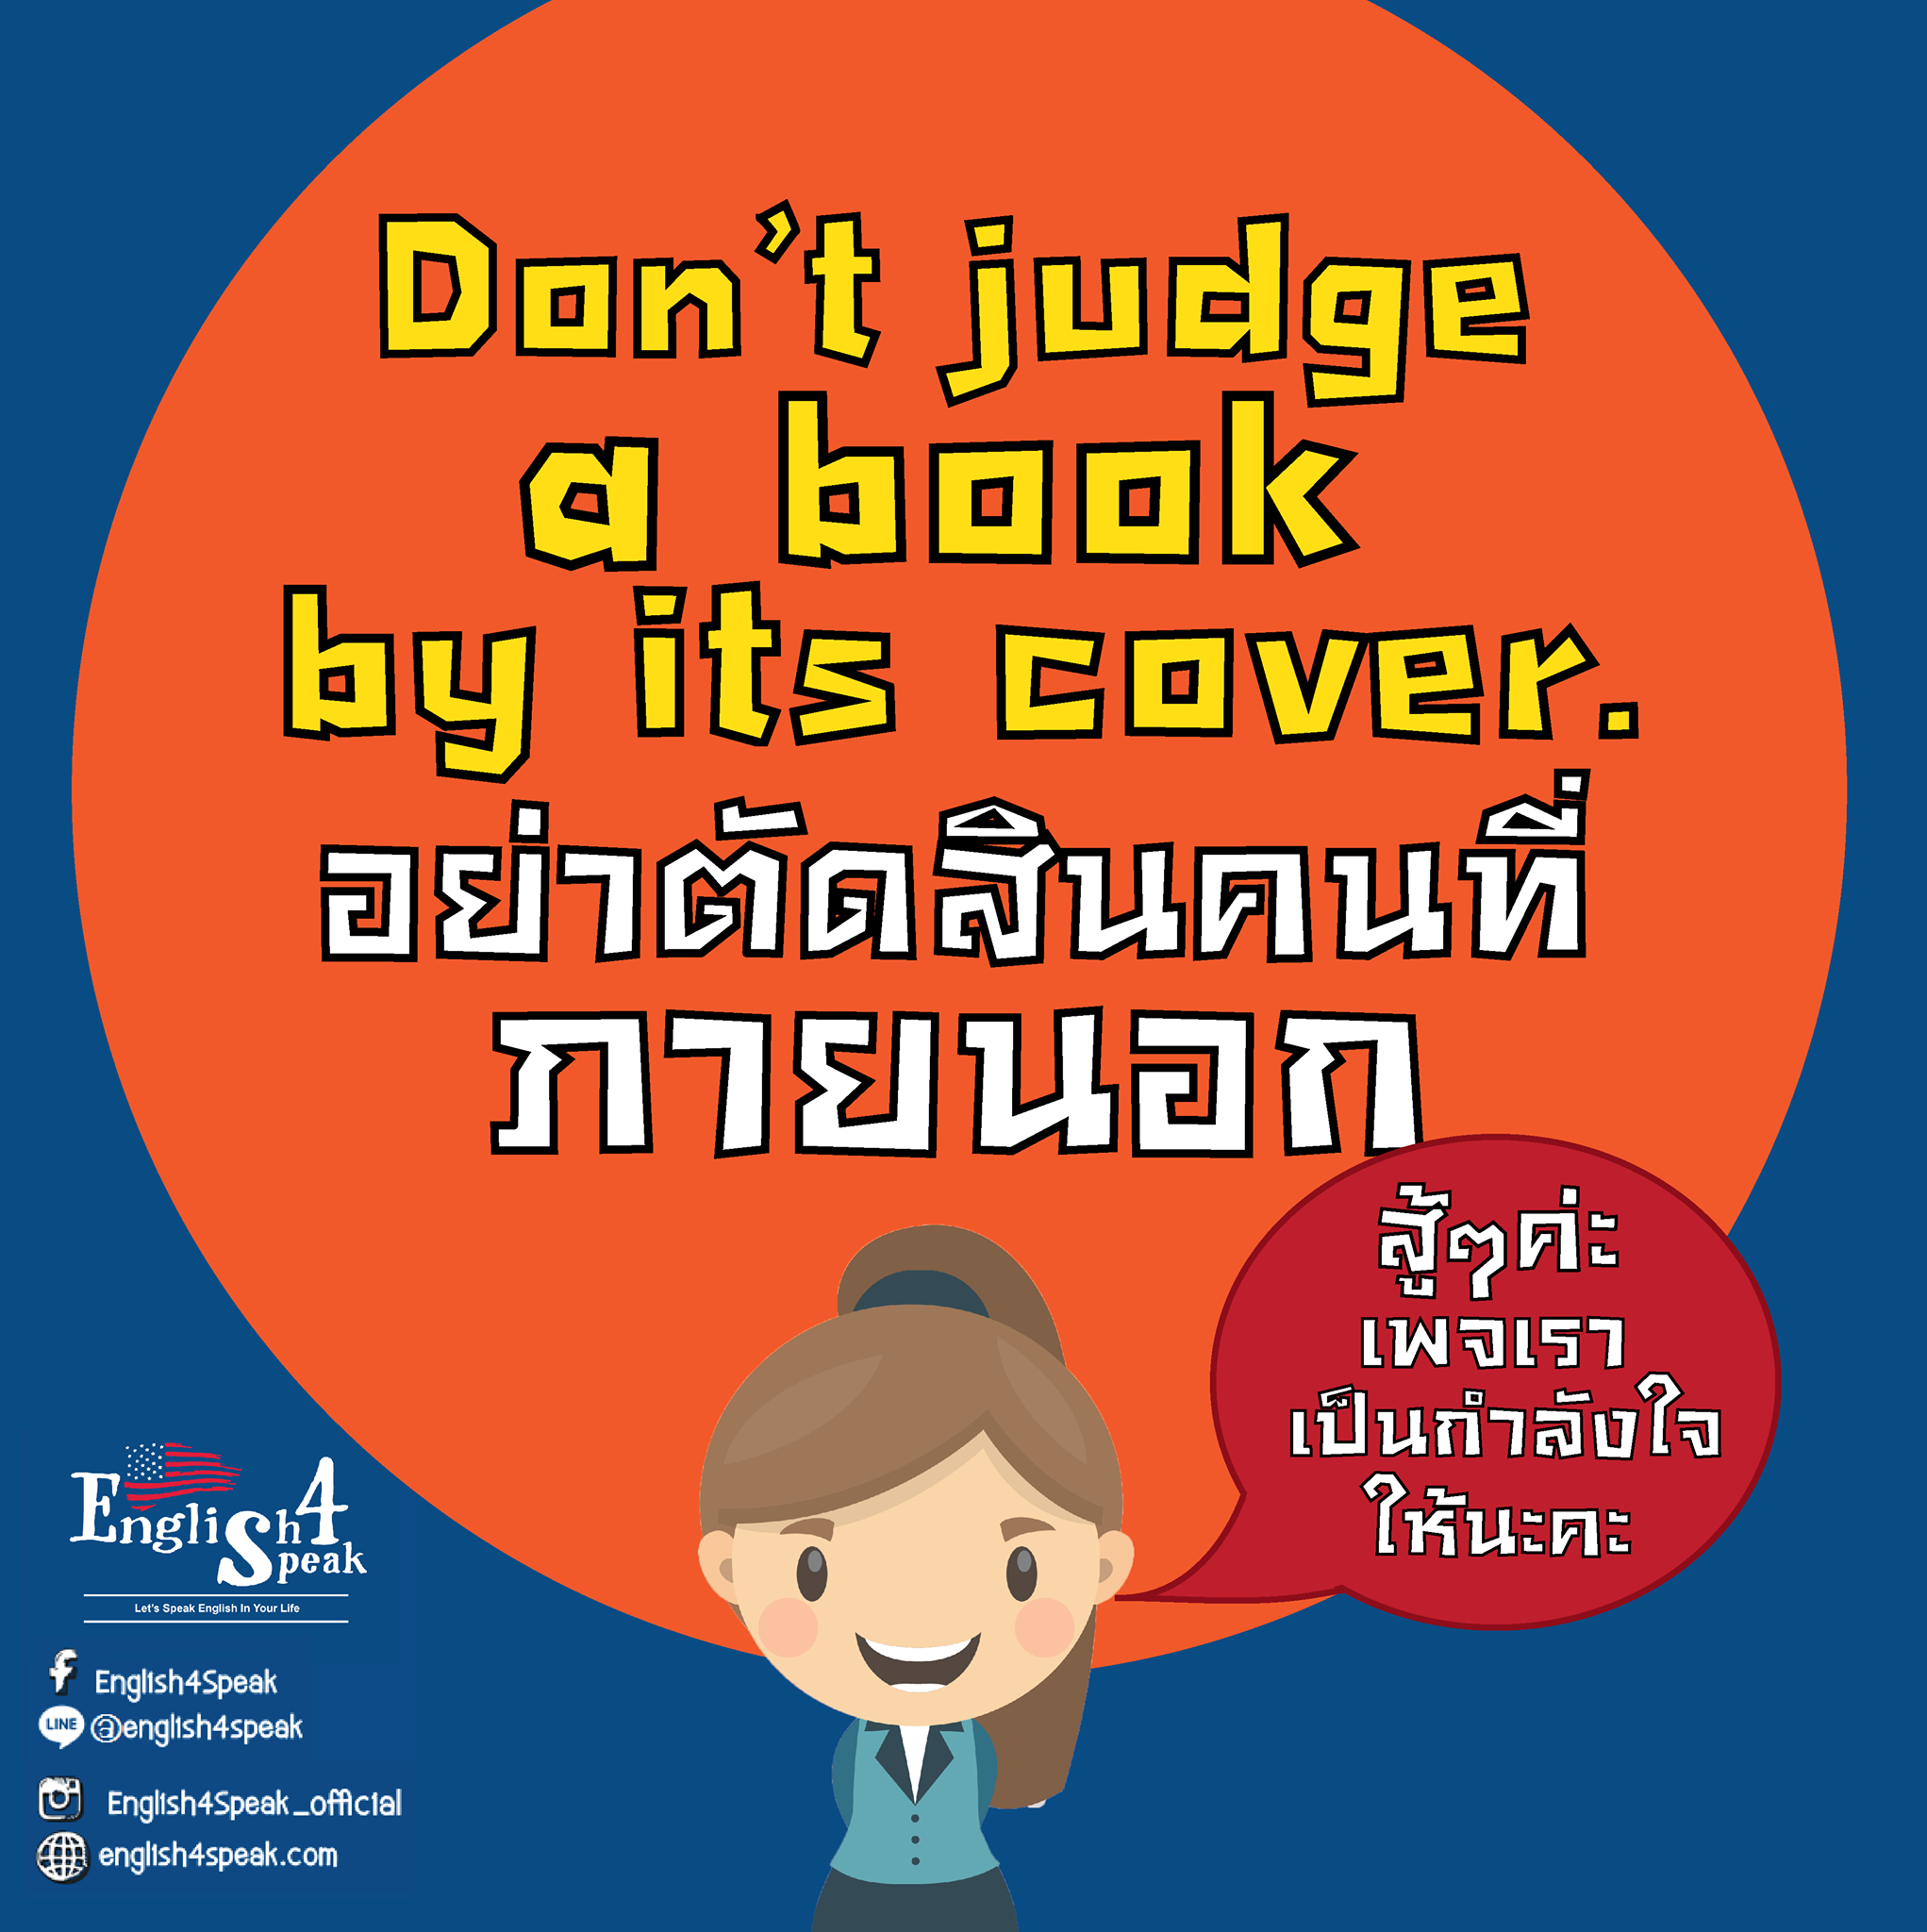 don t judge a book by its cover idiom